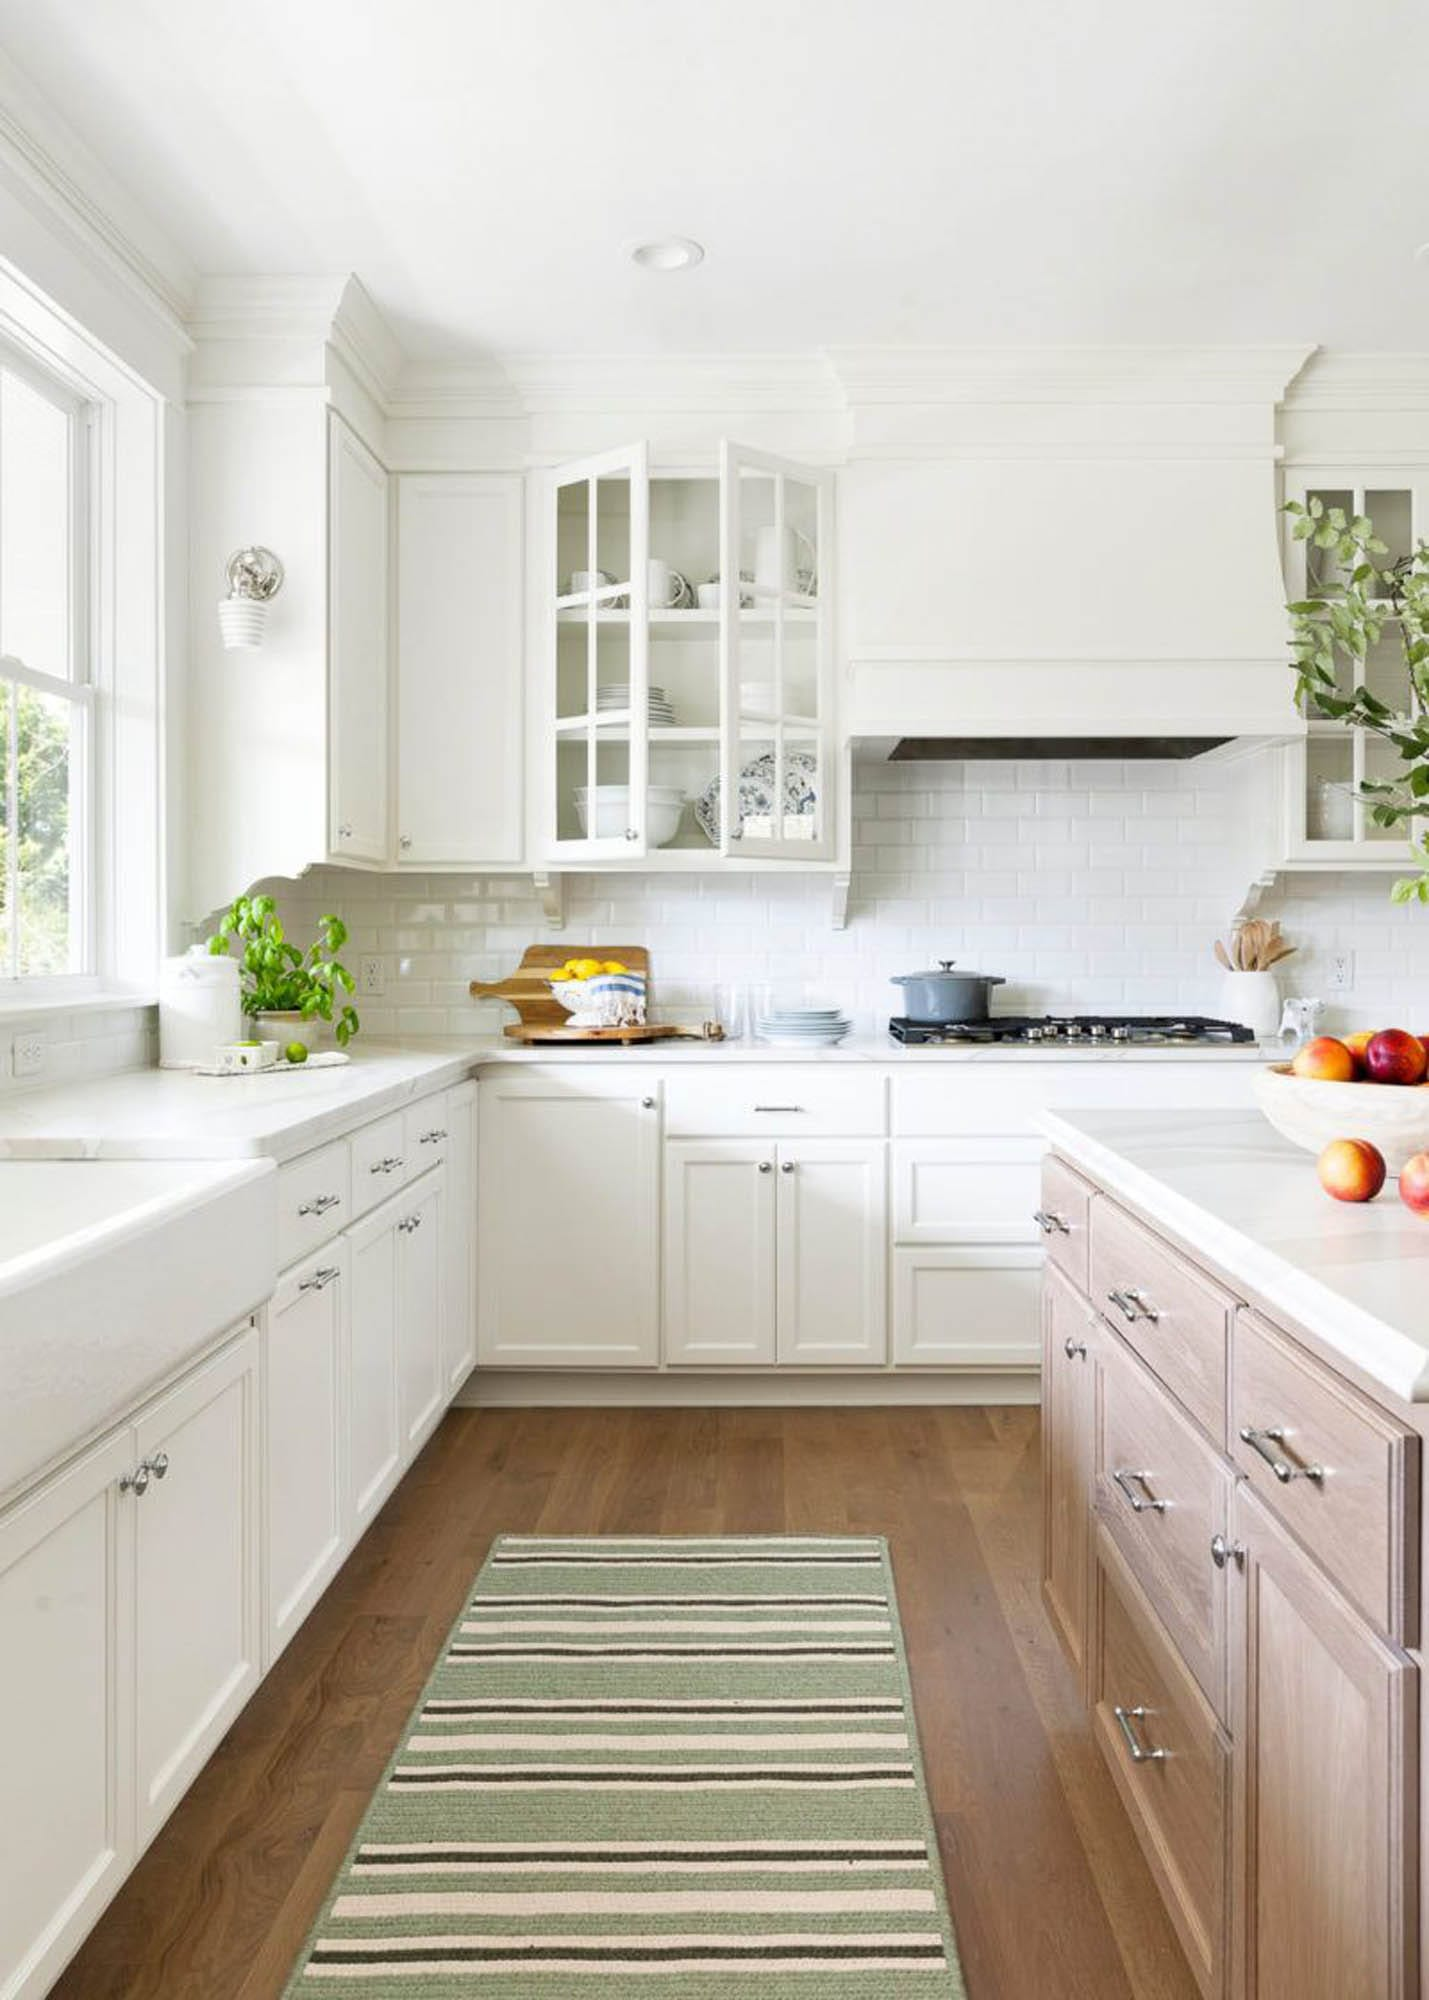 Bright, white kitchen